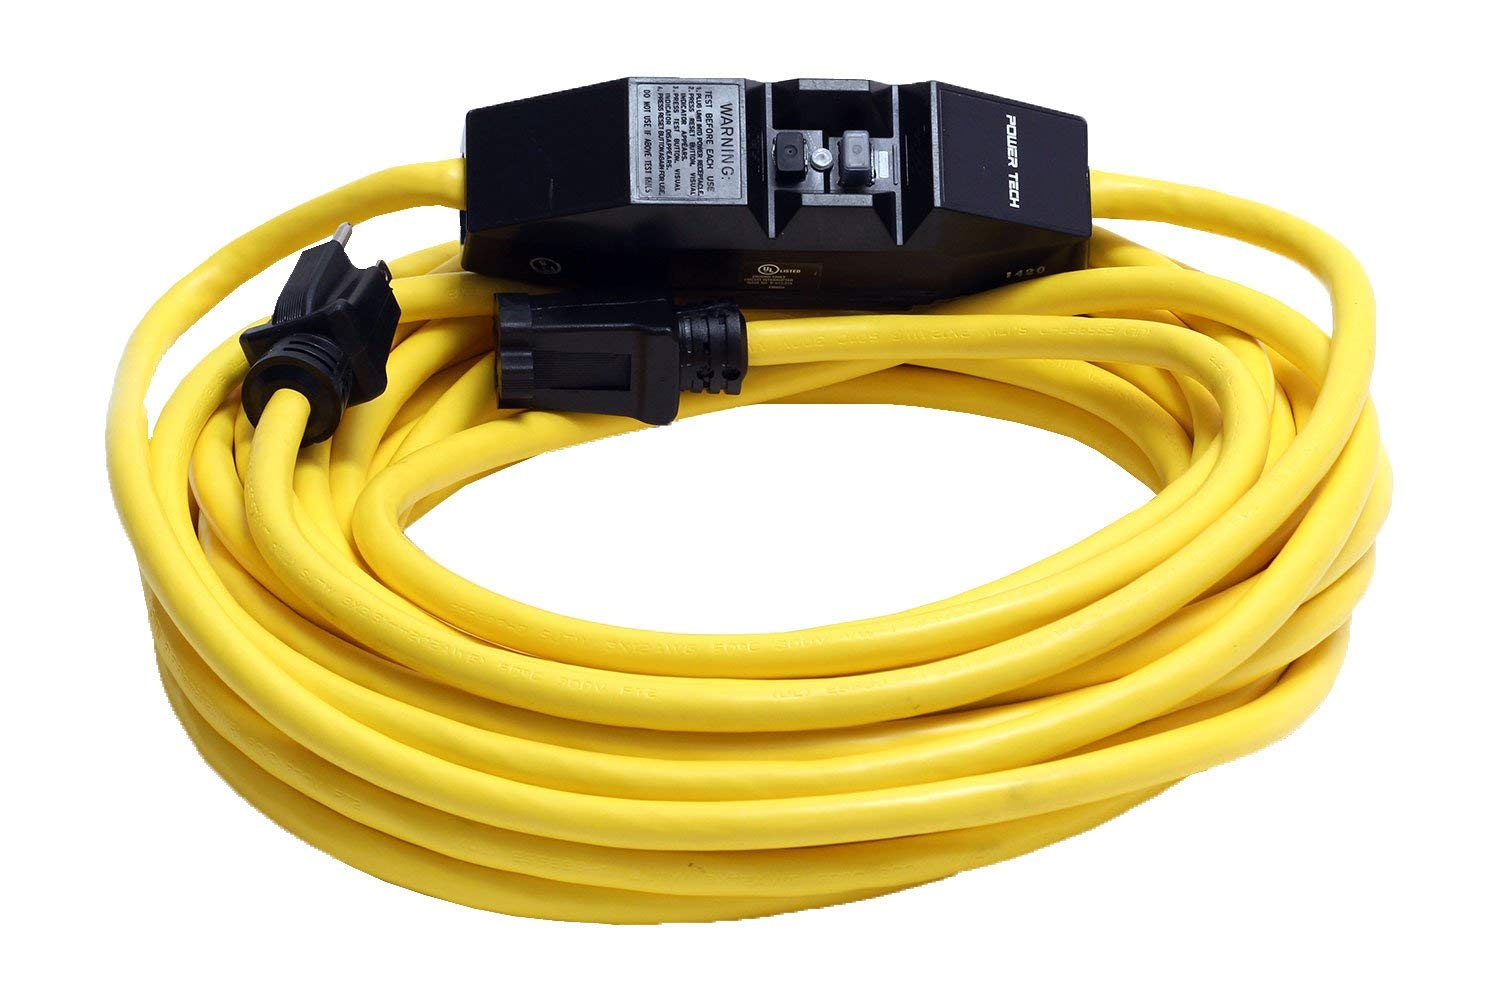 50 Foot 12 3 Gfci Ground Fault Circuit Interrupter Extension Cord Gfi Outlet The Detects Your Name Printed On